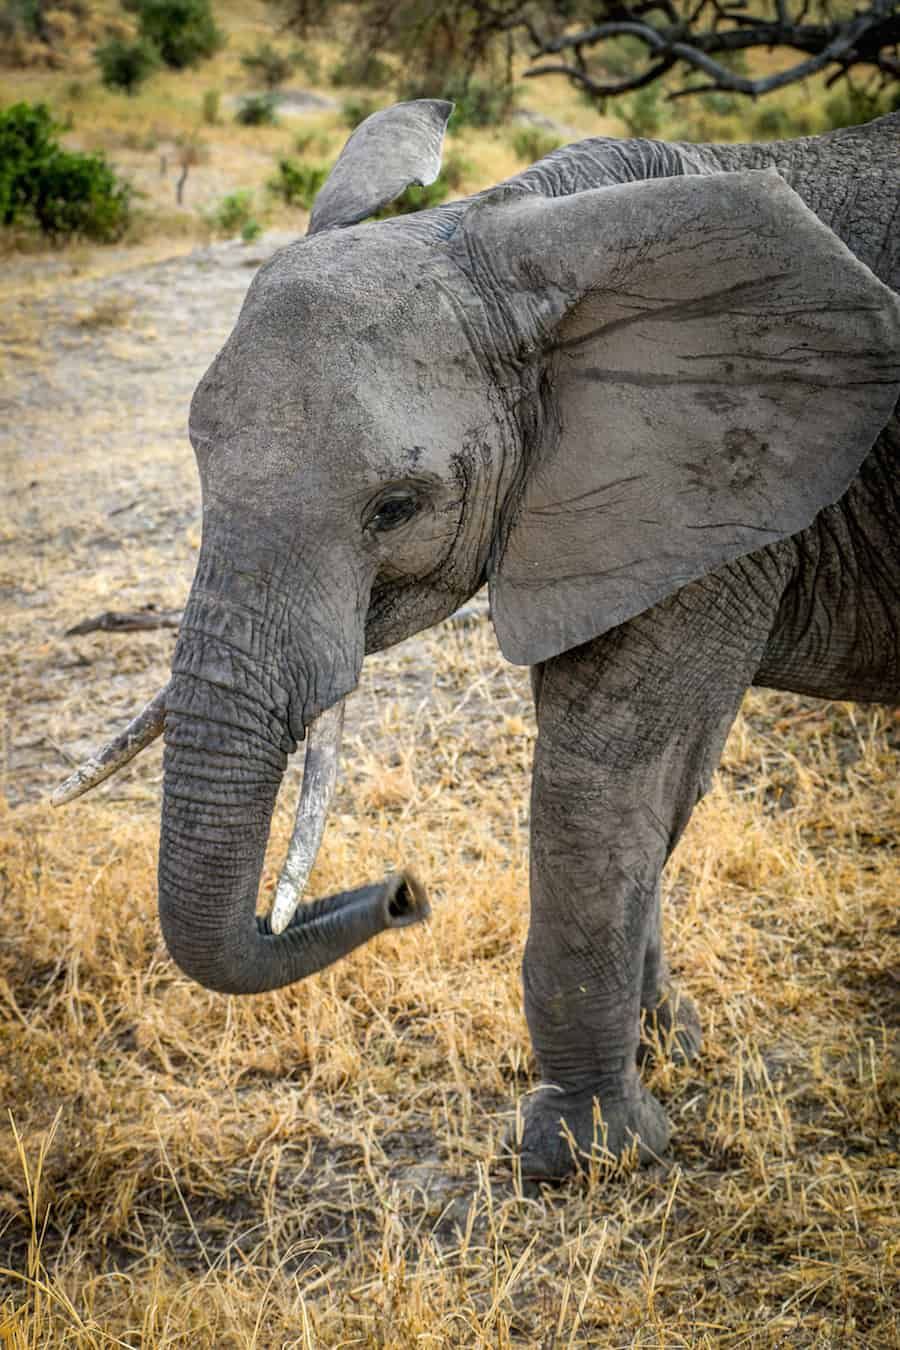 Adolescent Elephant in Tarangire National Park, Tanzania